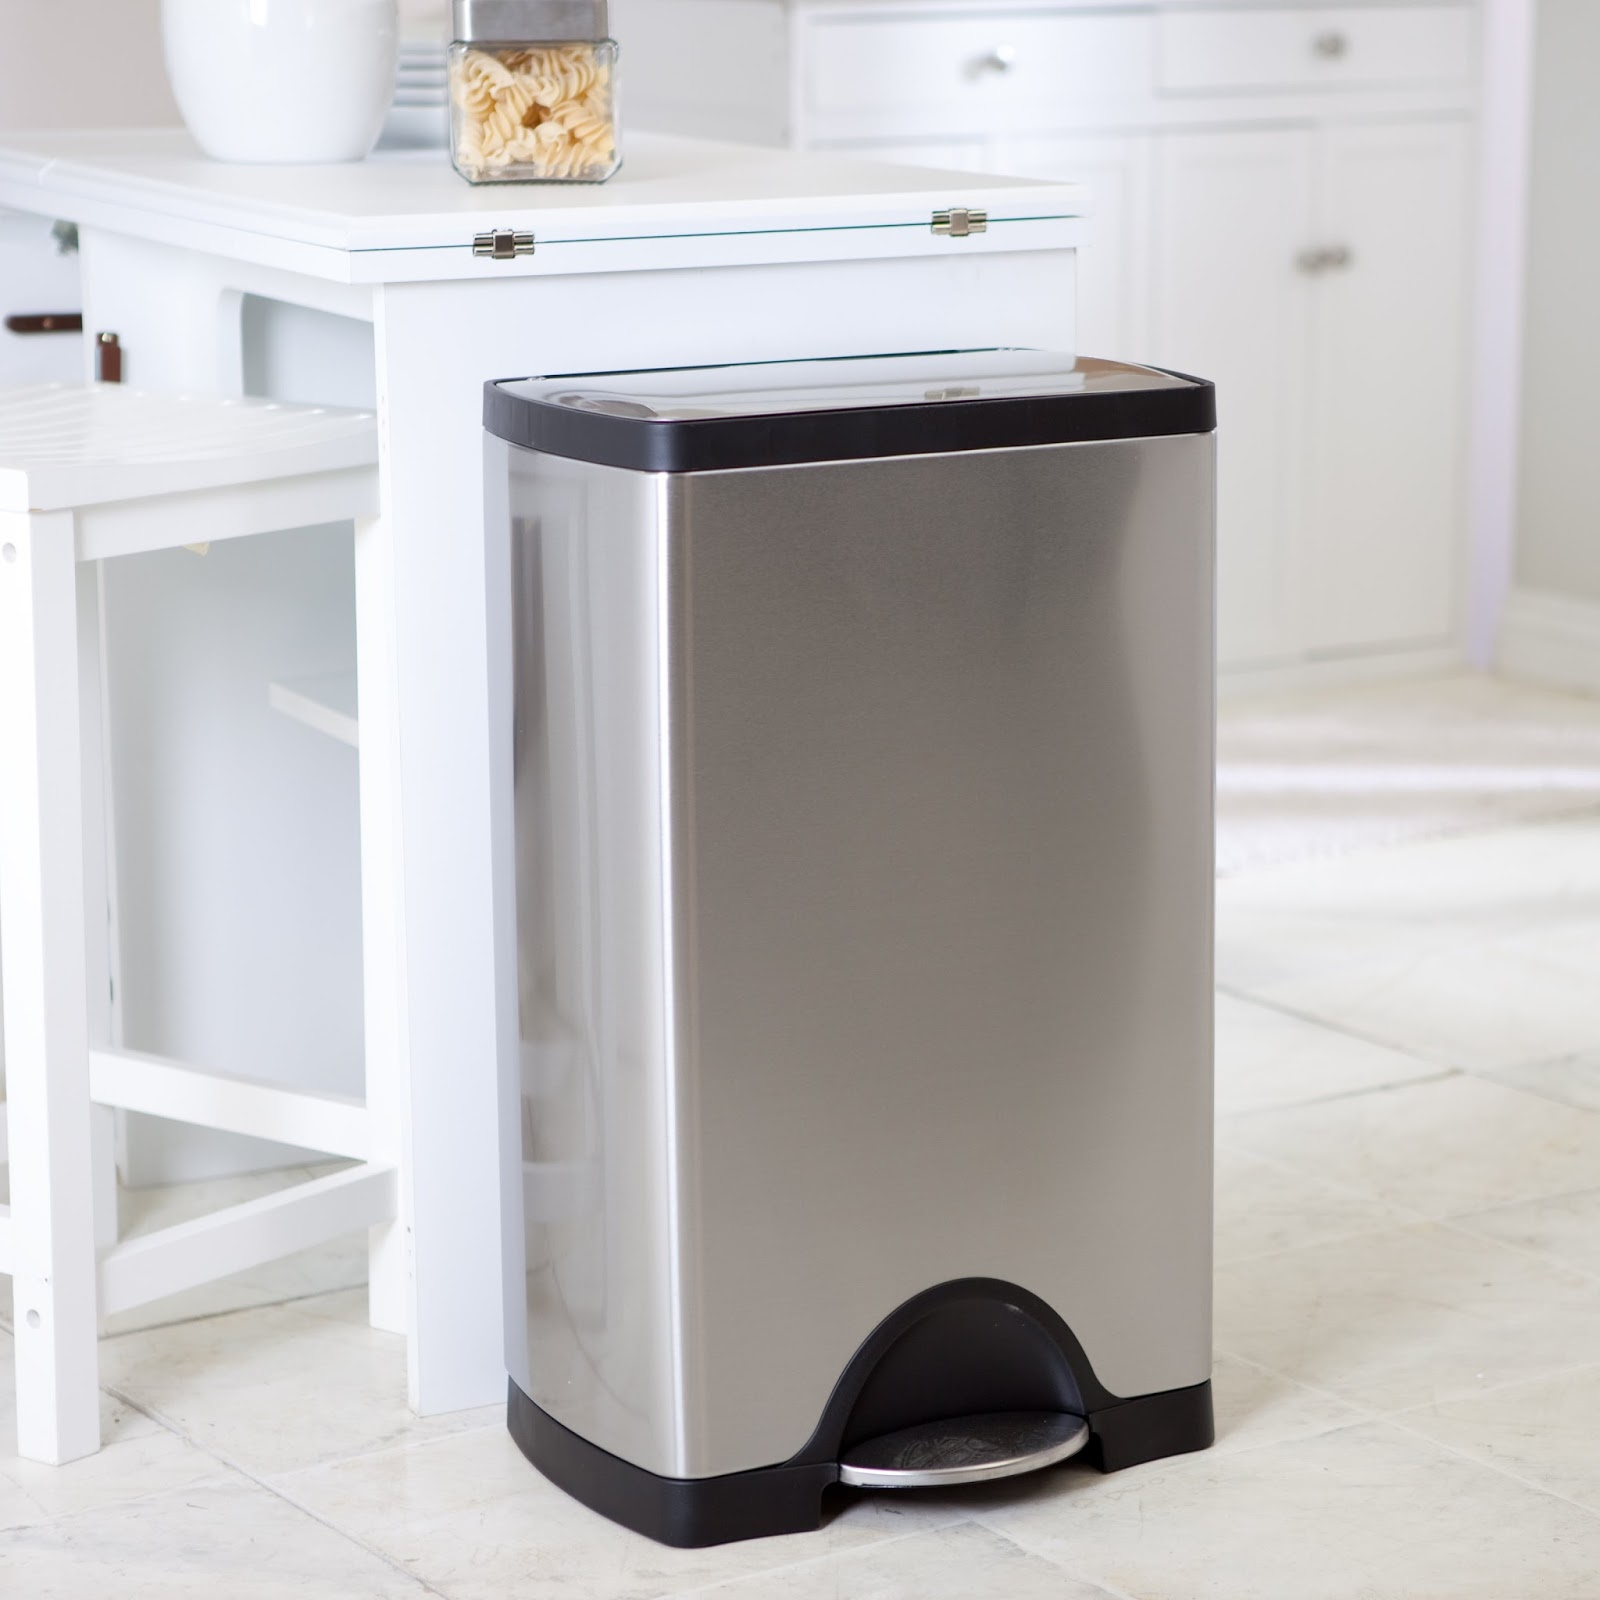 kitchen garbage cans walmart reviews & guide - kitchen remodel